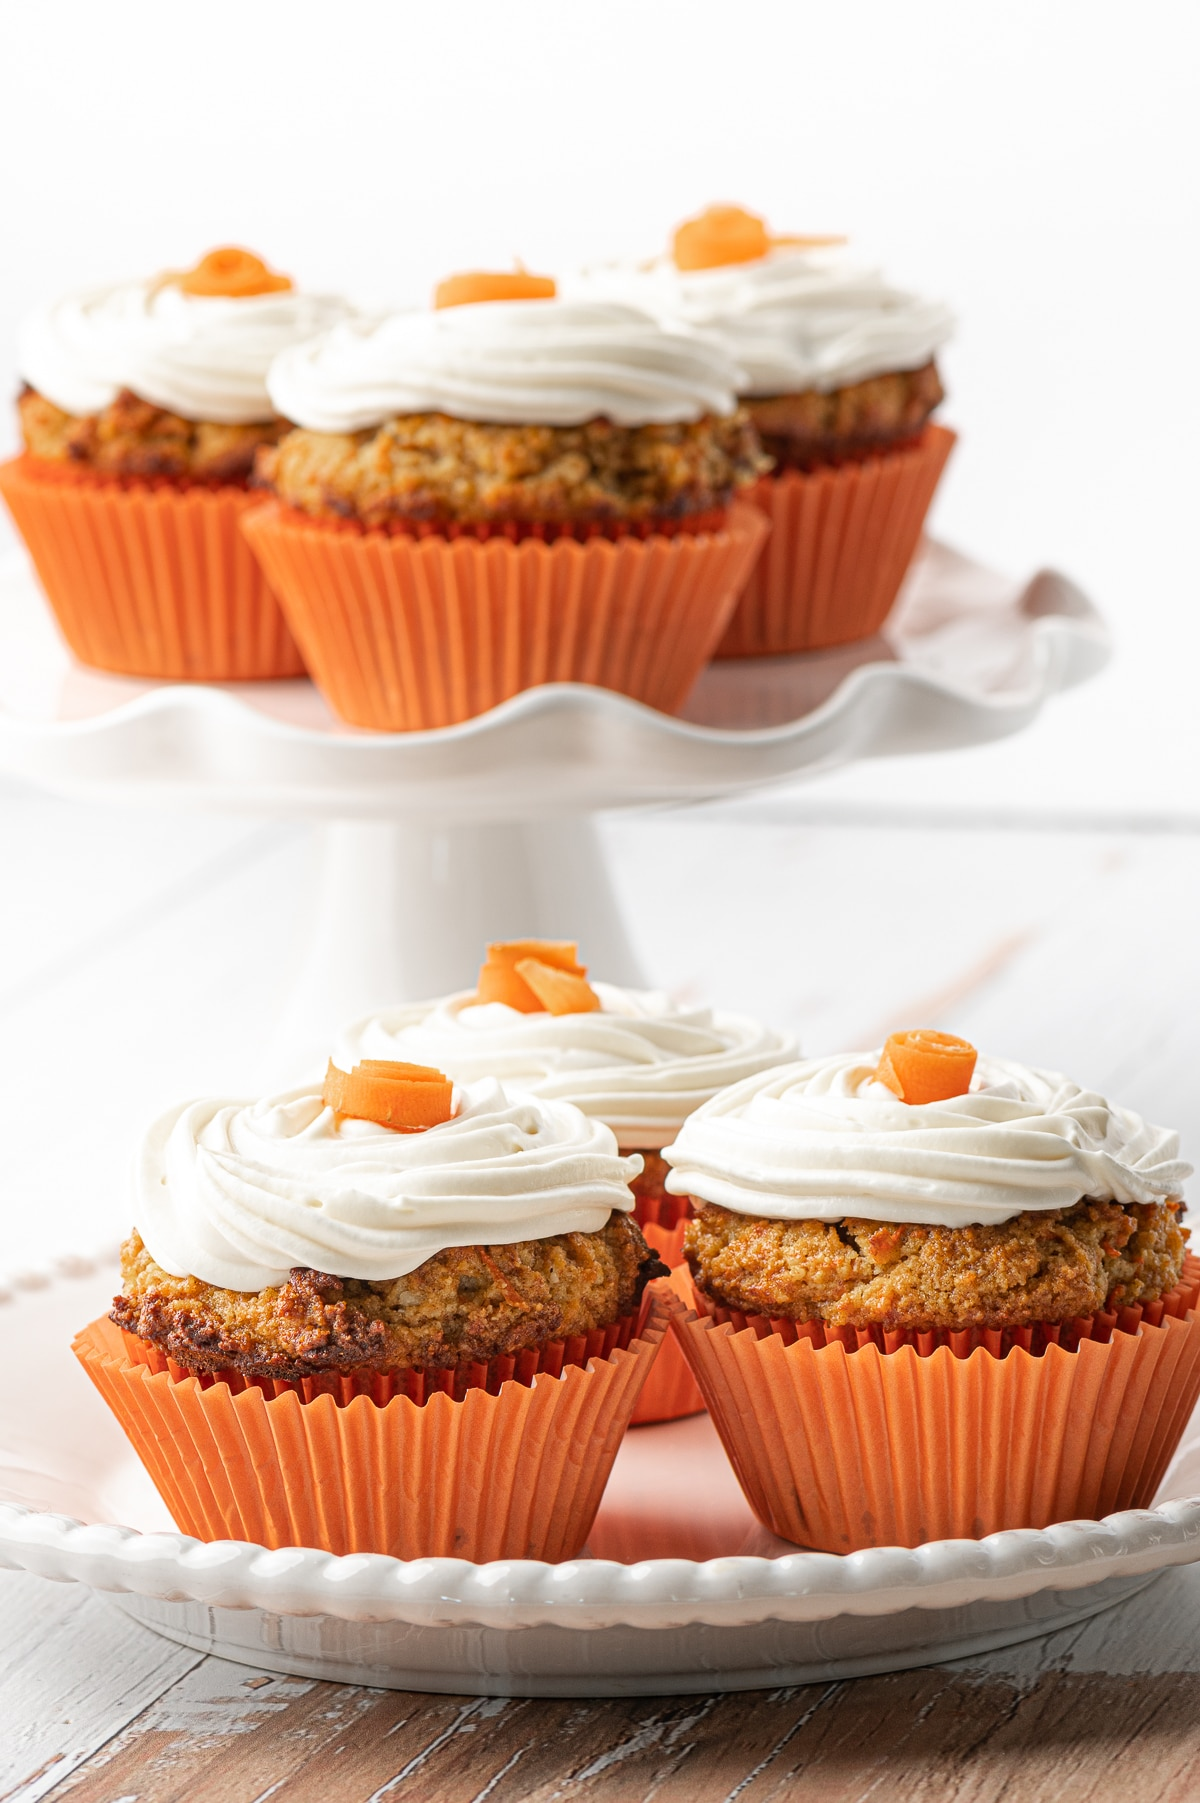 White plate with three muffins in the foreground and a stack of carrot cake muffins on a white ruffled cake stand in the back